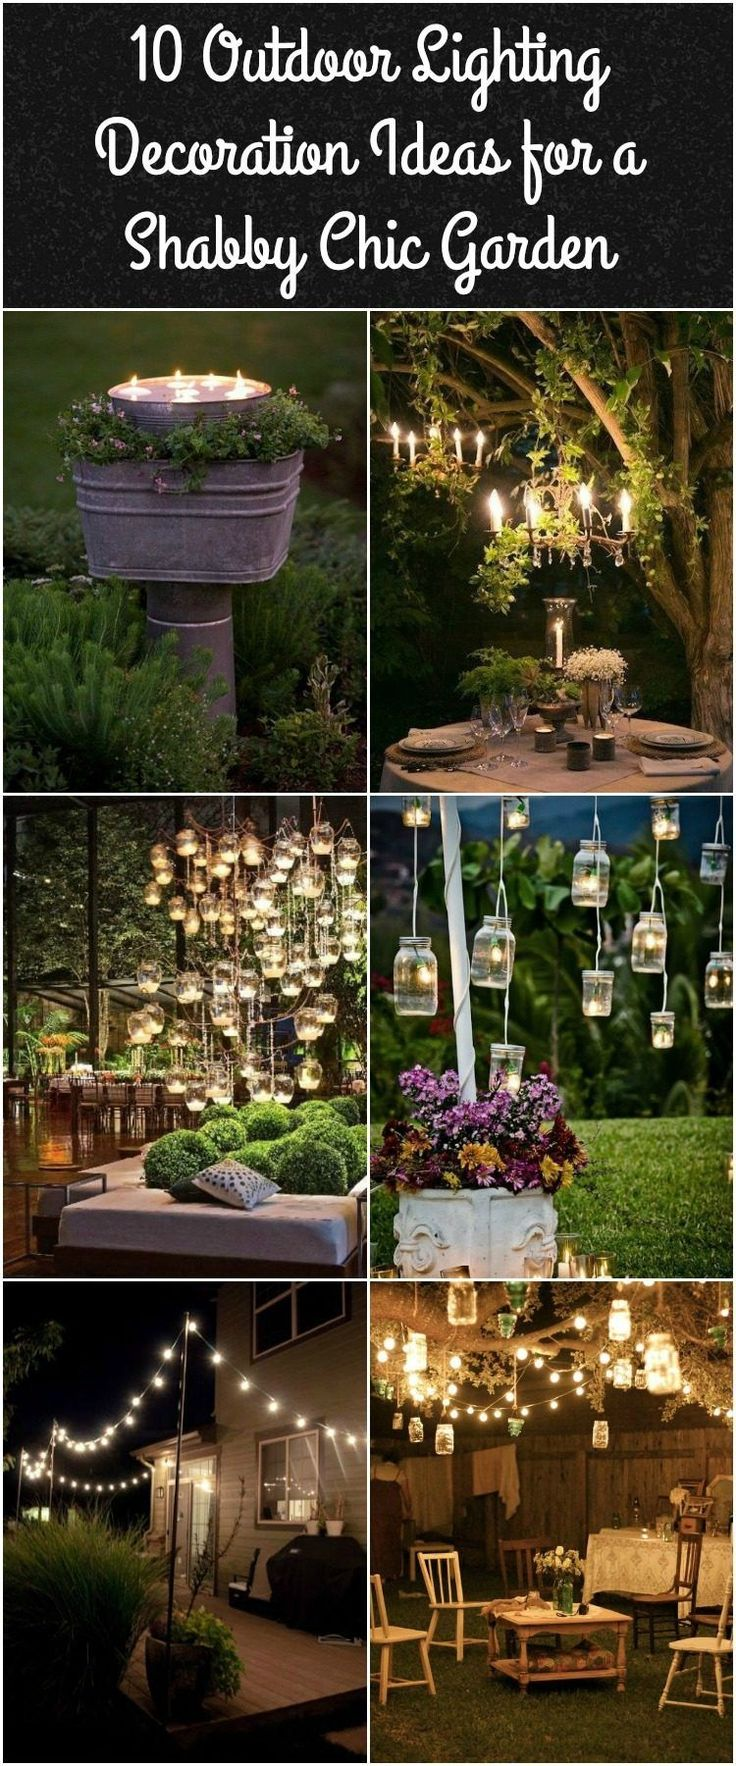 10 Outdoor Lighting Decoration Ideas for a Shabby Chic Garden. #6 is Lovely Outdoor Lighting